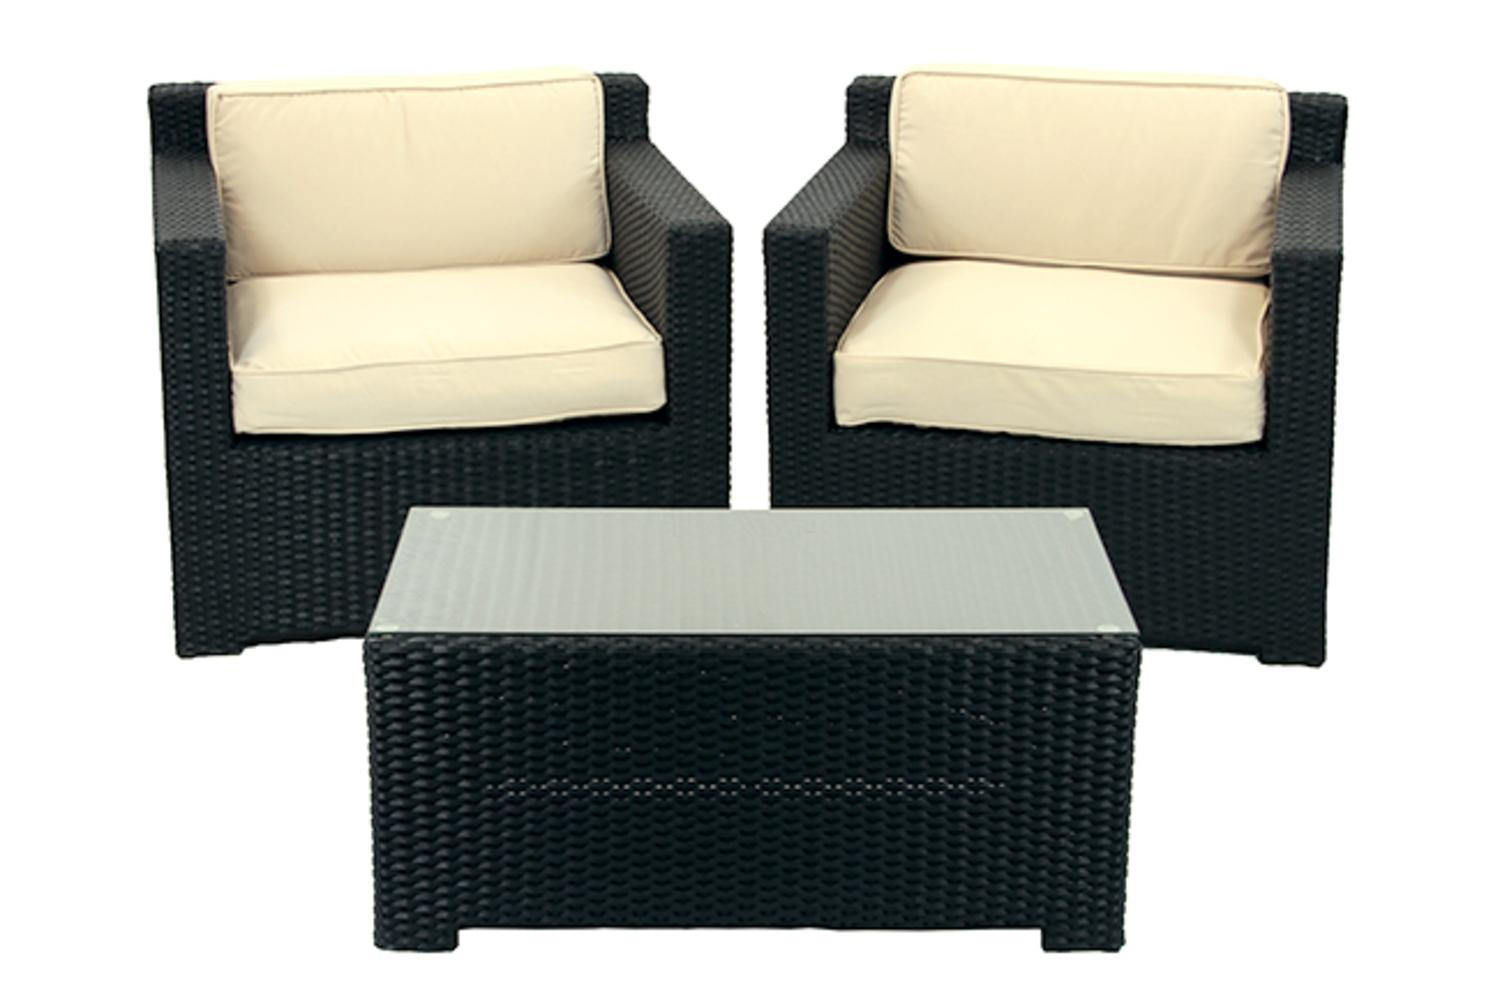 3 Piece Black Resin Wicker Outdoor Patio Furniture Set   Beige Cushions